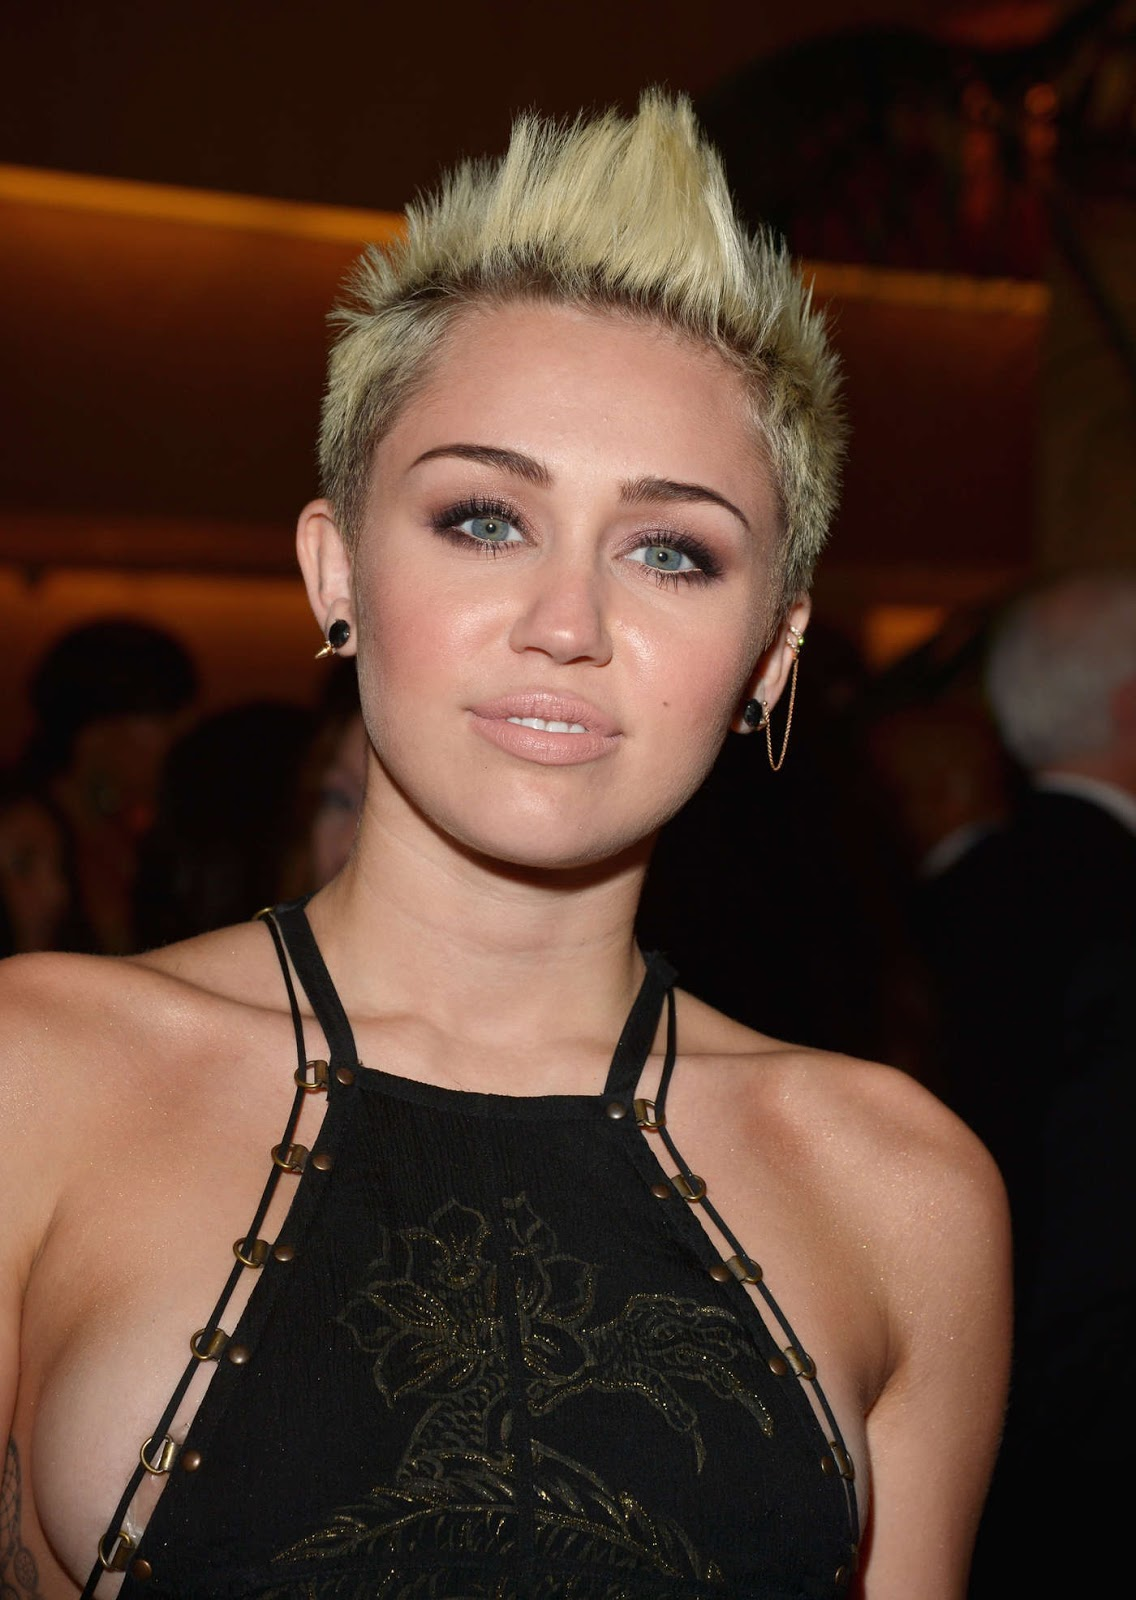 Hd Wallpapers Miley Cyrus Photos-7941